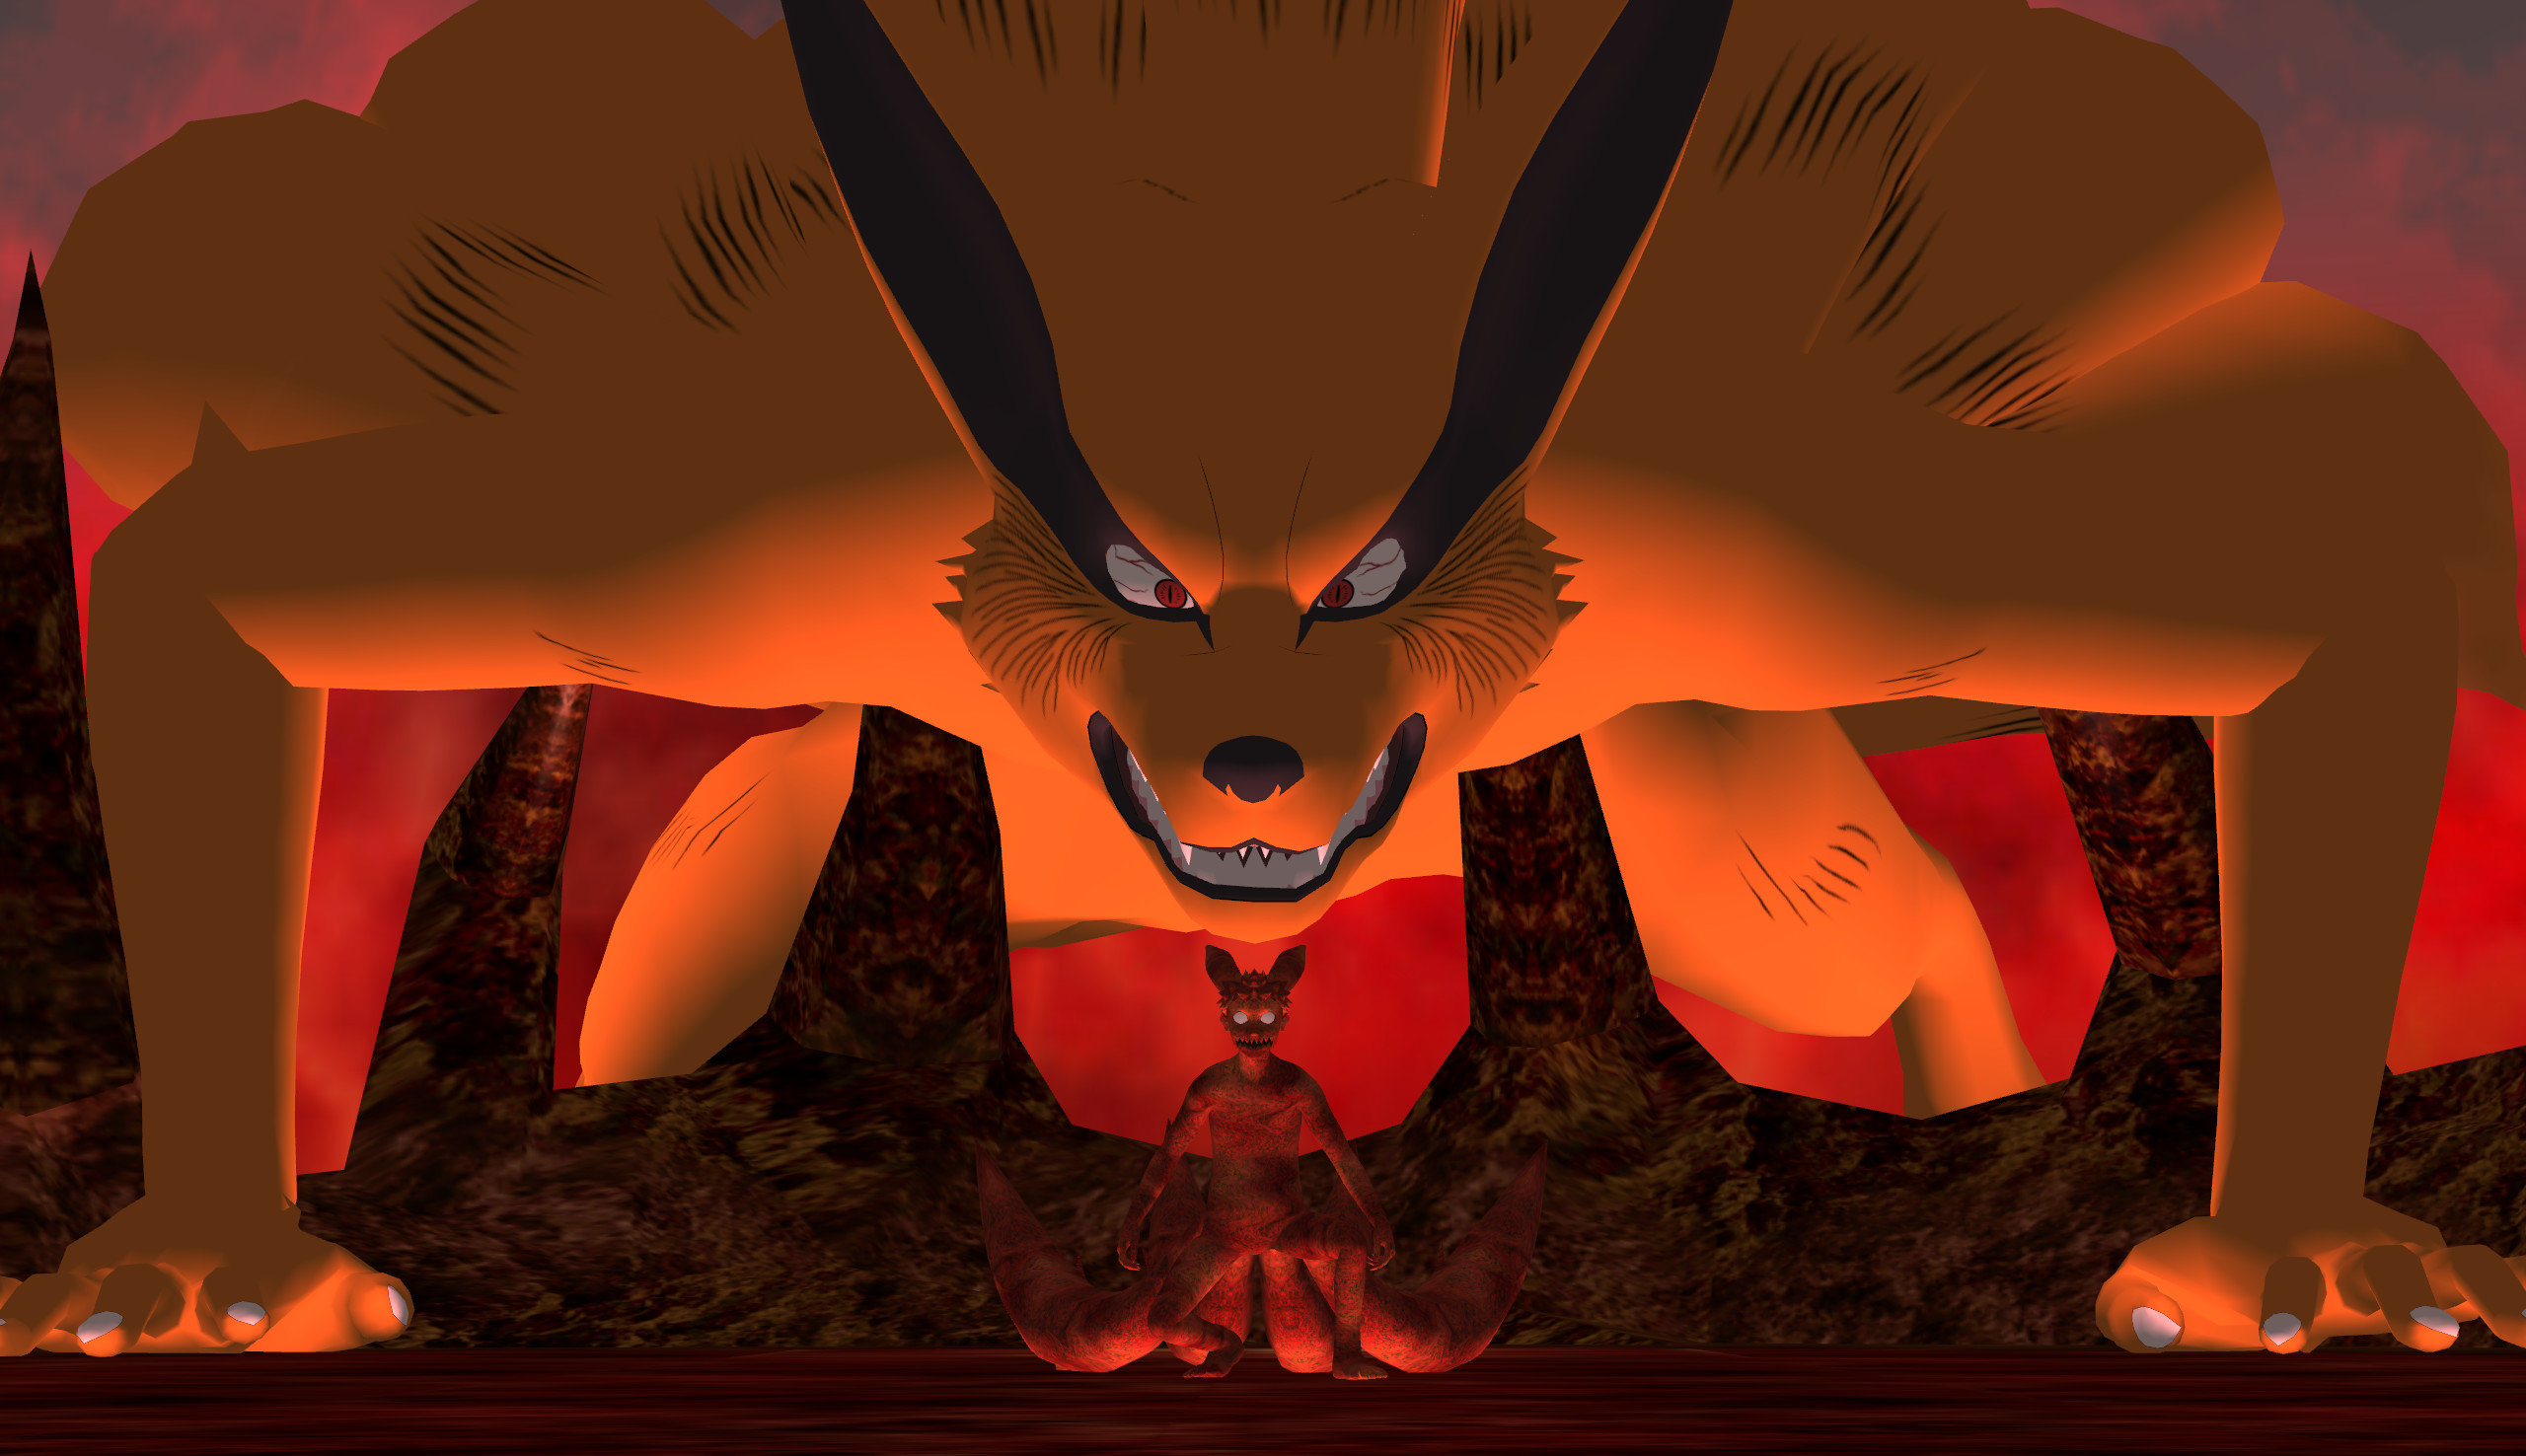 Kyuubi Kurama and Naruto four tails form WallPaper by agrael34 on .